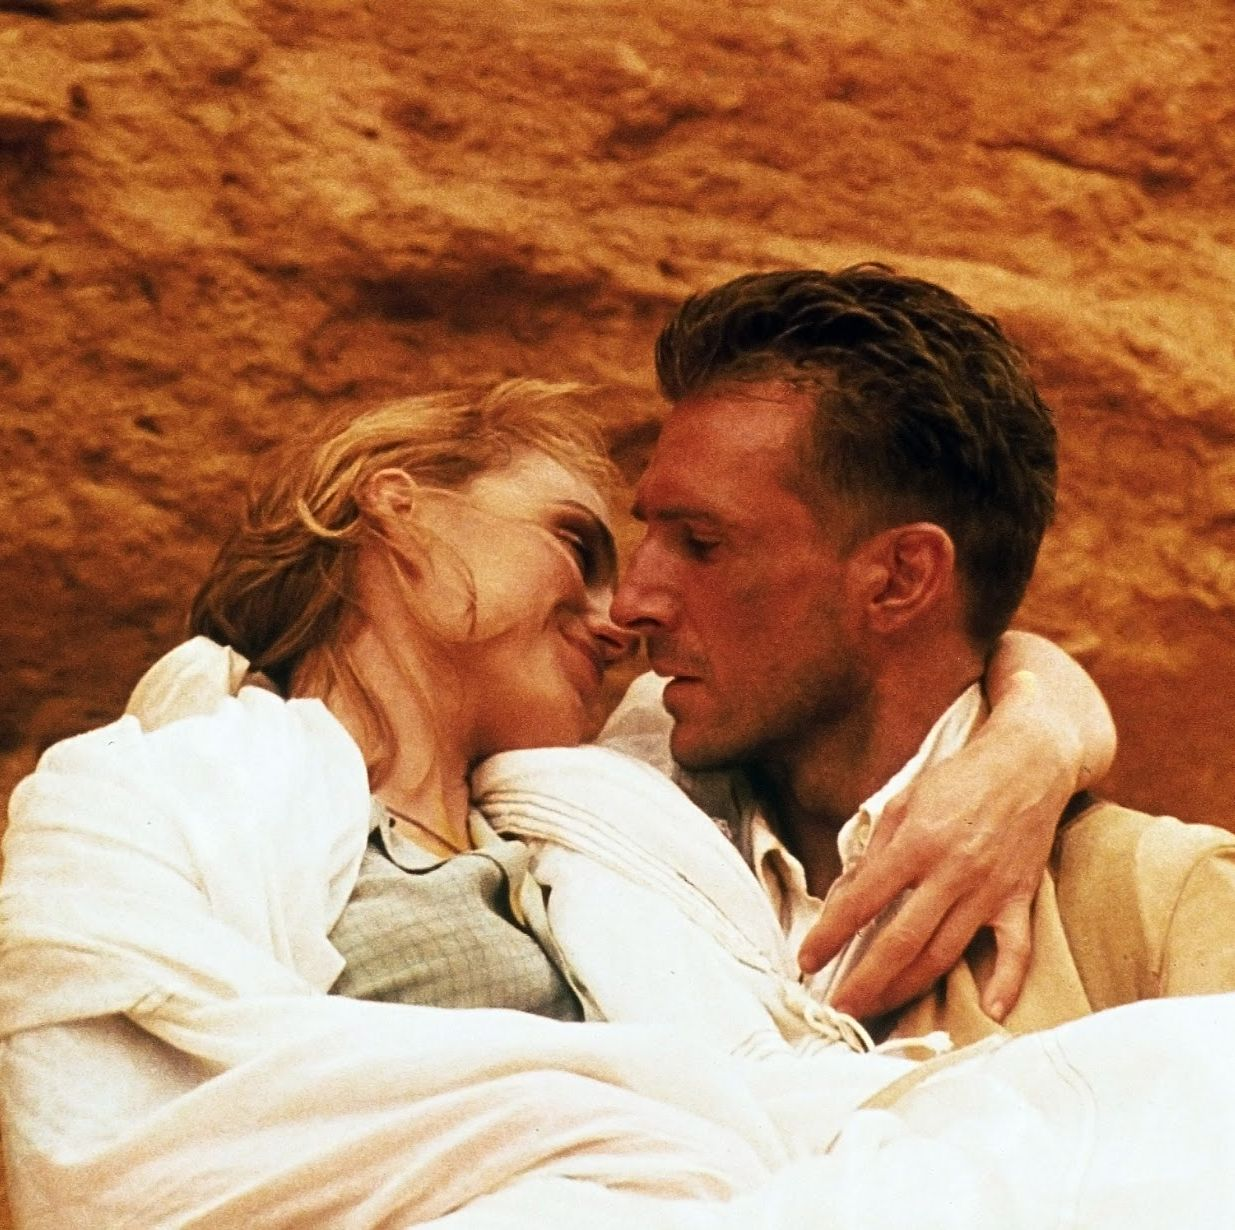 The English Patient The Oscar-winning epic stars Ralph Fiennes as a dying man in the final days of World War II who recounts his torrid affair with a married British woman in the years leading up to the war.